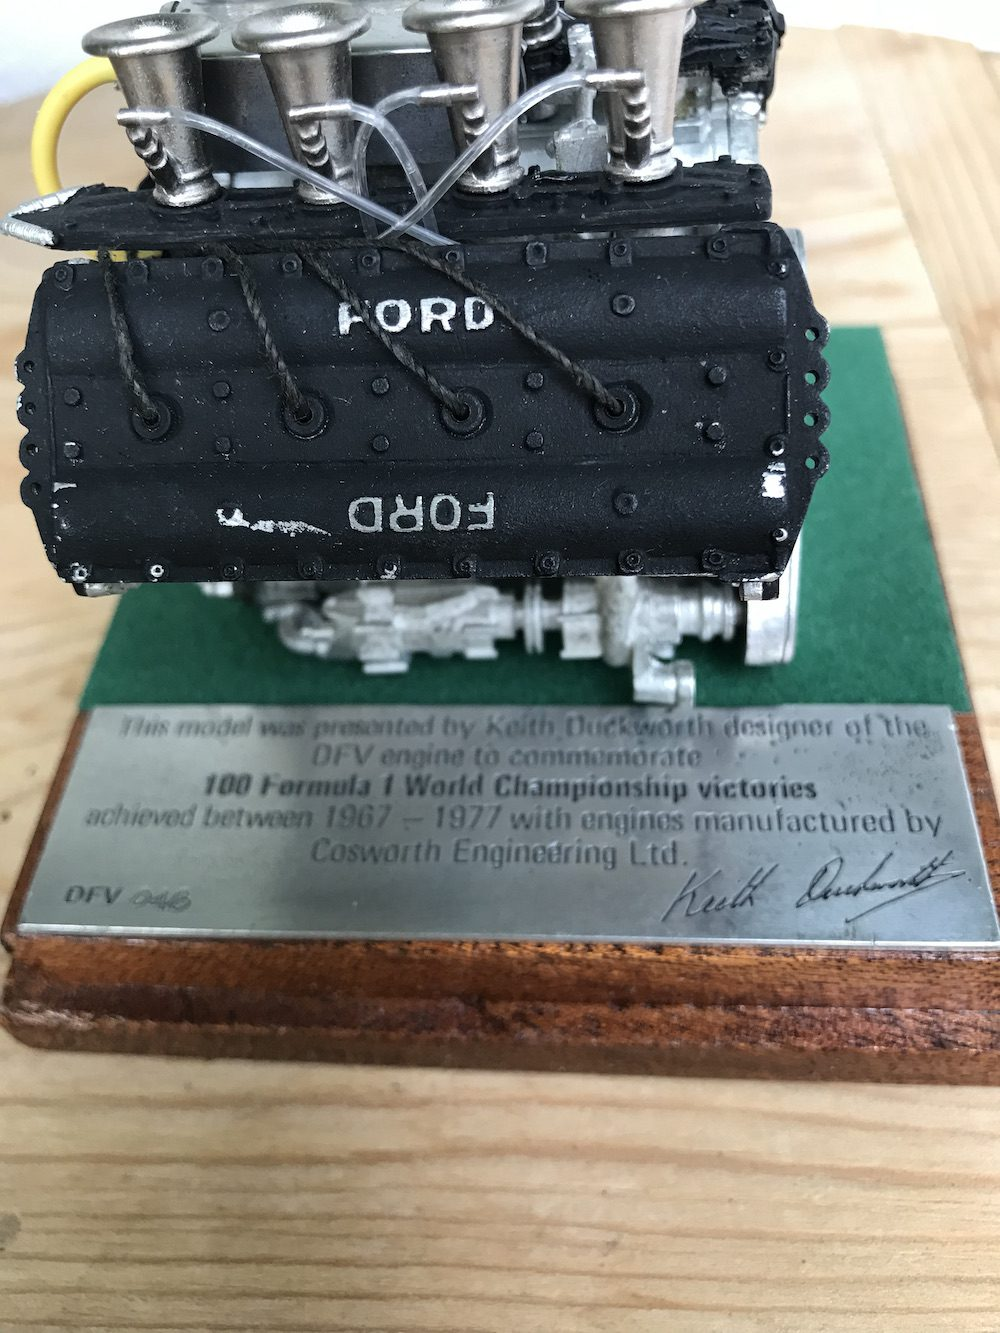 ORIGINAL KEITH DUCKWORTH- DESIGNER OF DFV FORD COSWORTH LTD EDTION SCALE MODEL OF THE FORD COSWORTH. - Vintage Motoring UK